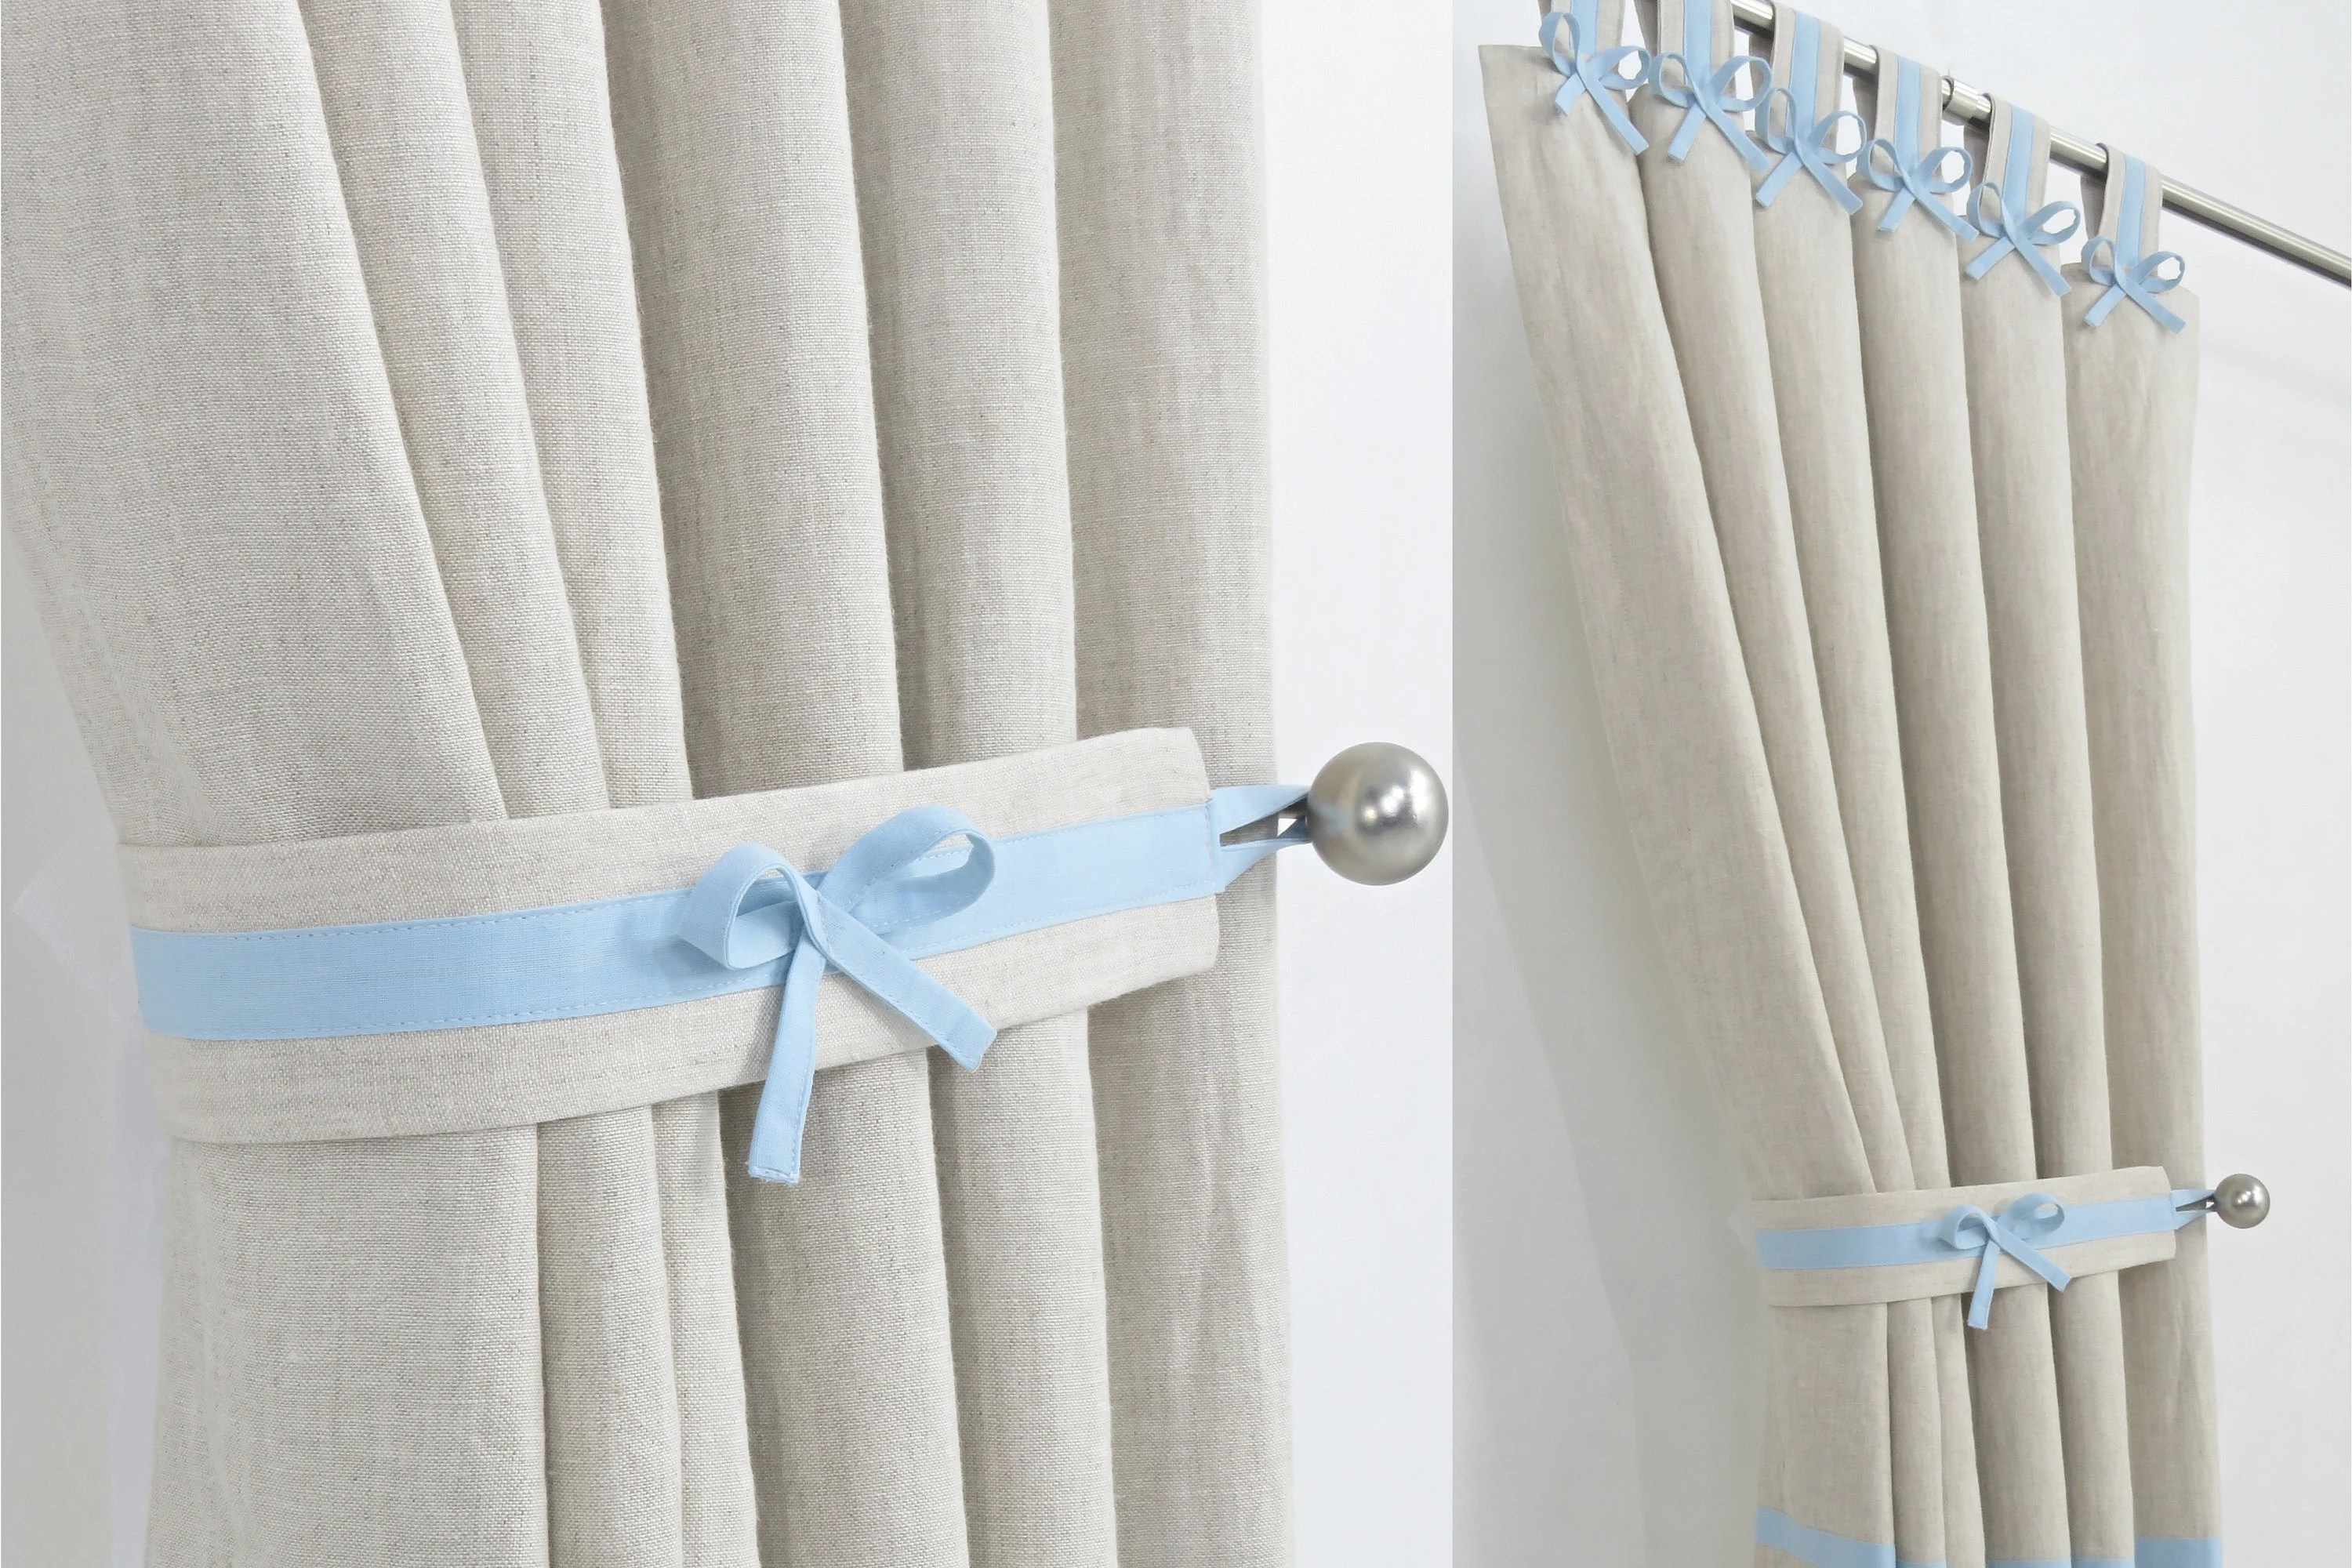 Boys Nursery Curtains Nursery Curtains Boys Nursery Linen Curtains Linen Drapes Baby Light Blue Nursery Curtains Made To Measure Natural Curtains Nursery Drapes